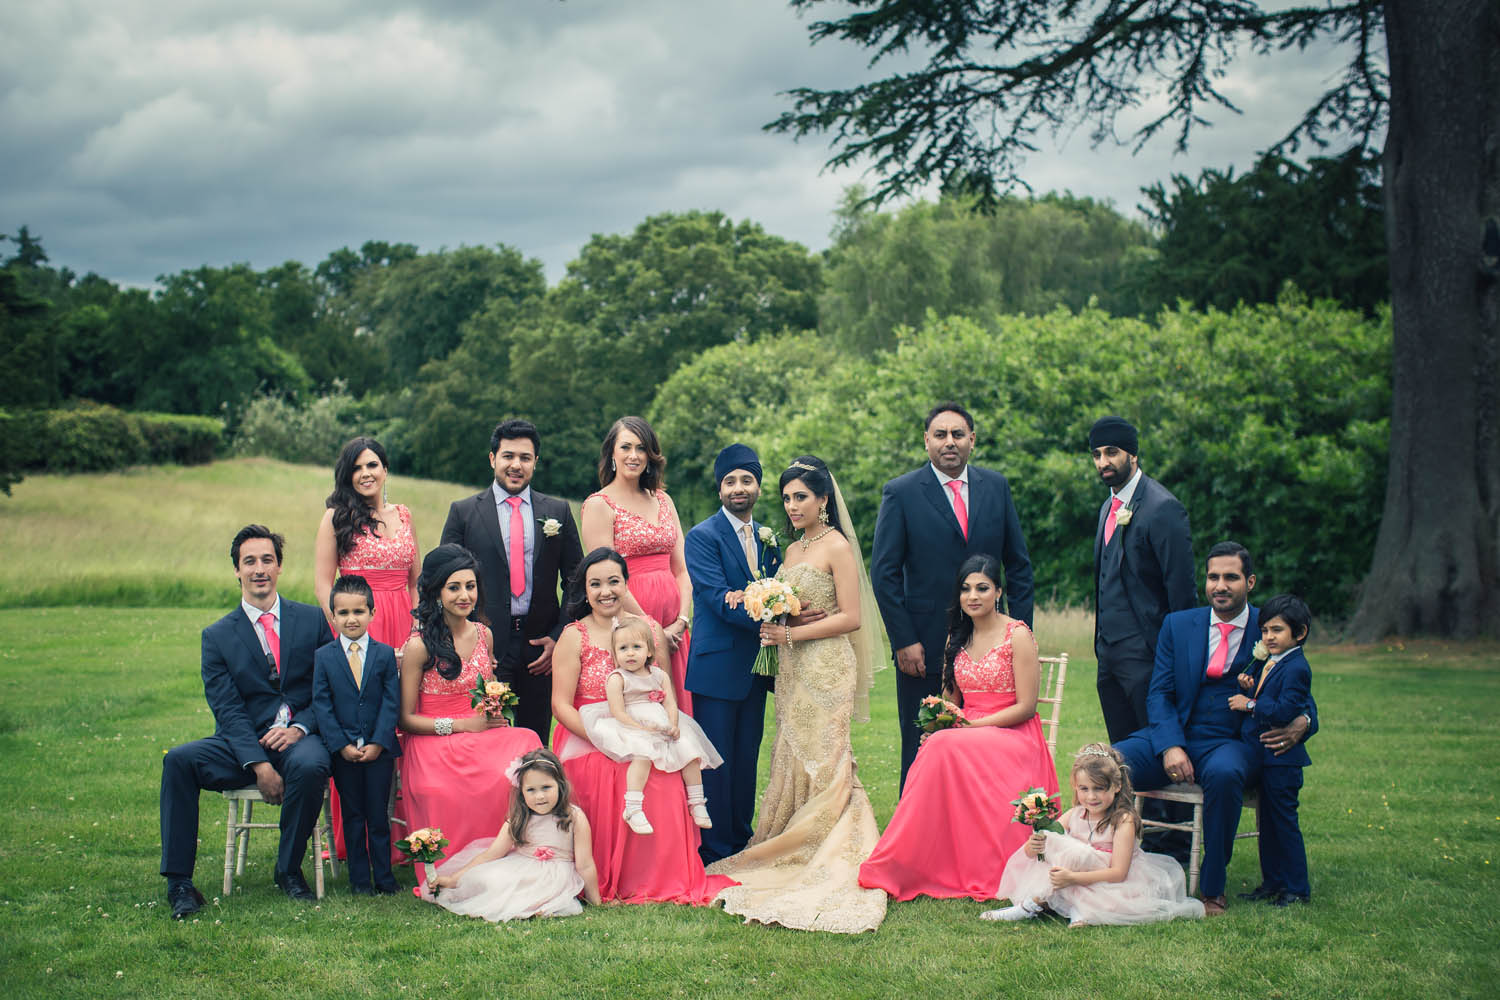 wedding_in_london_103.jpg